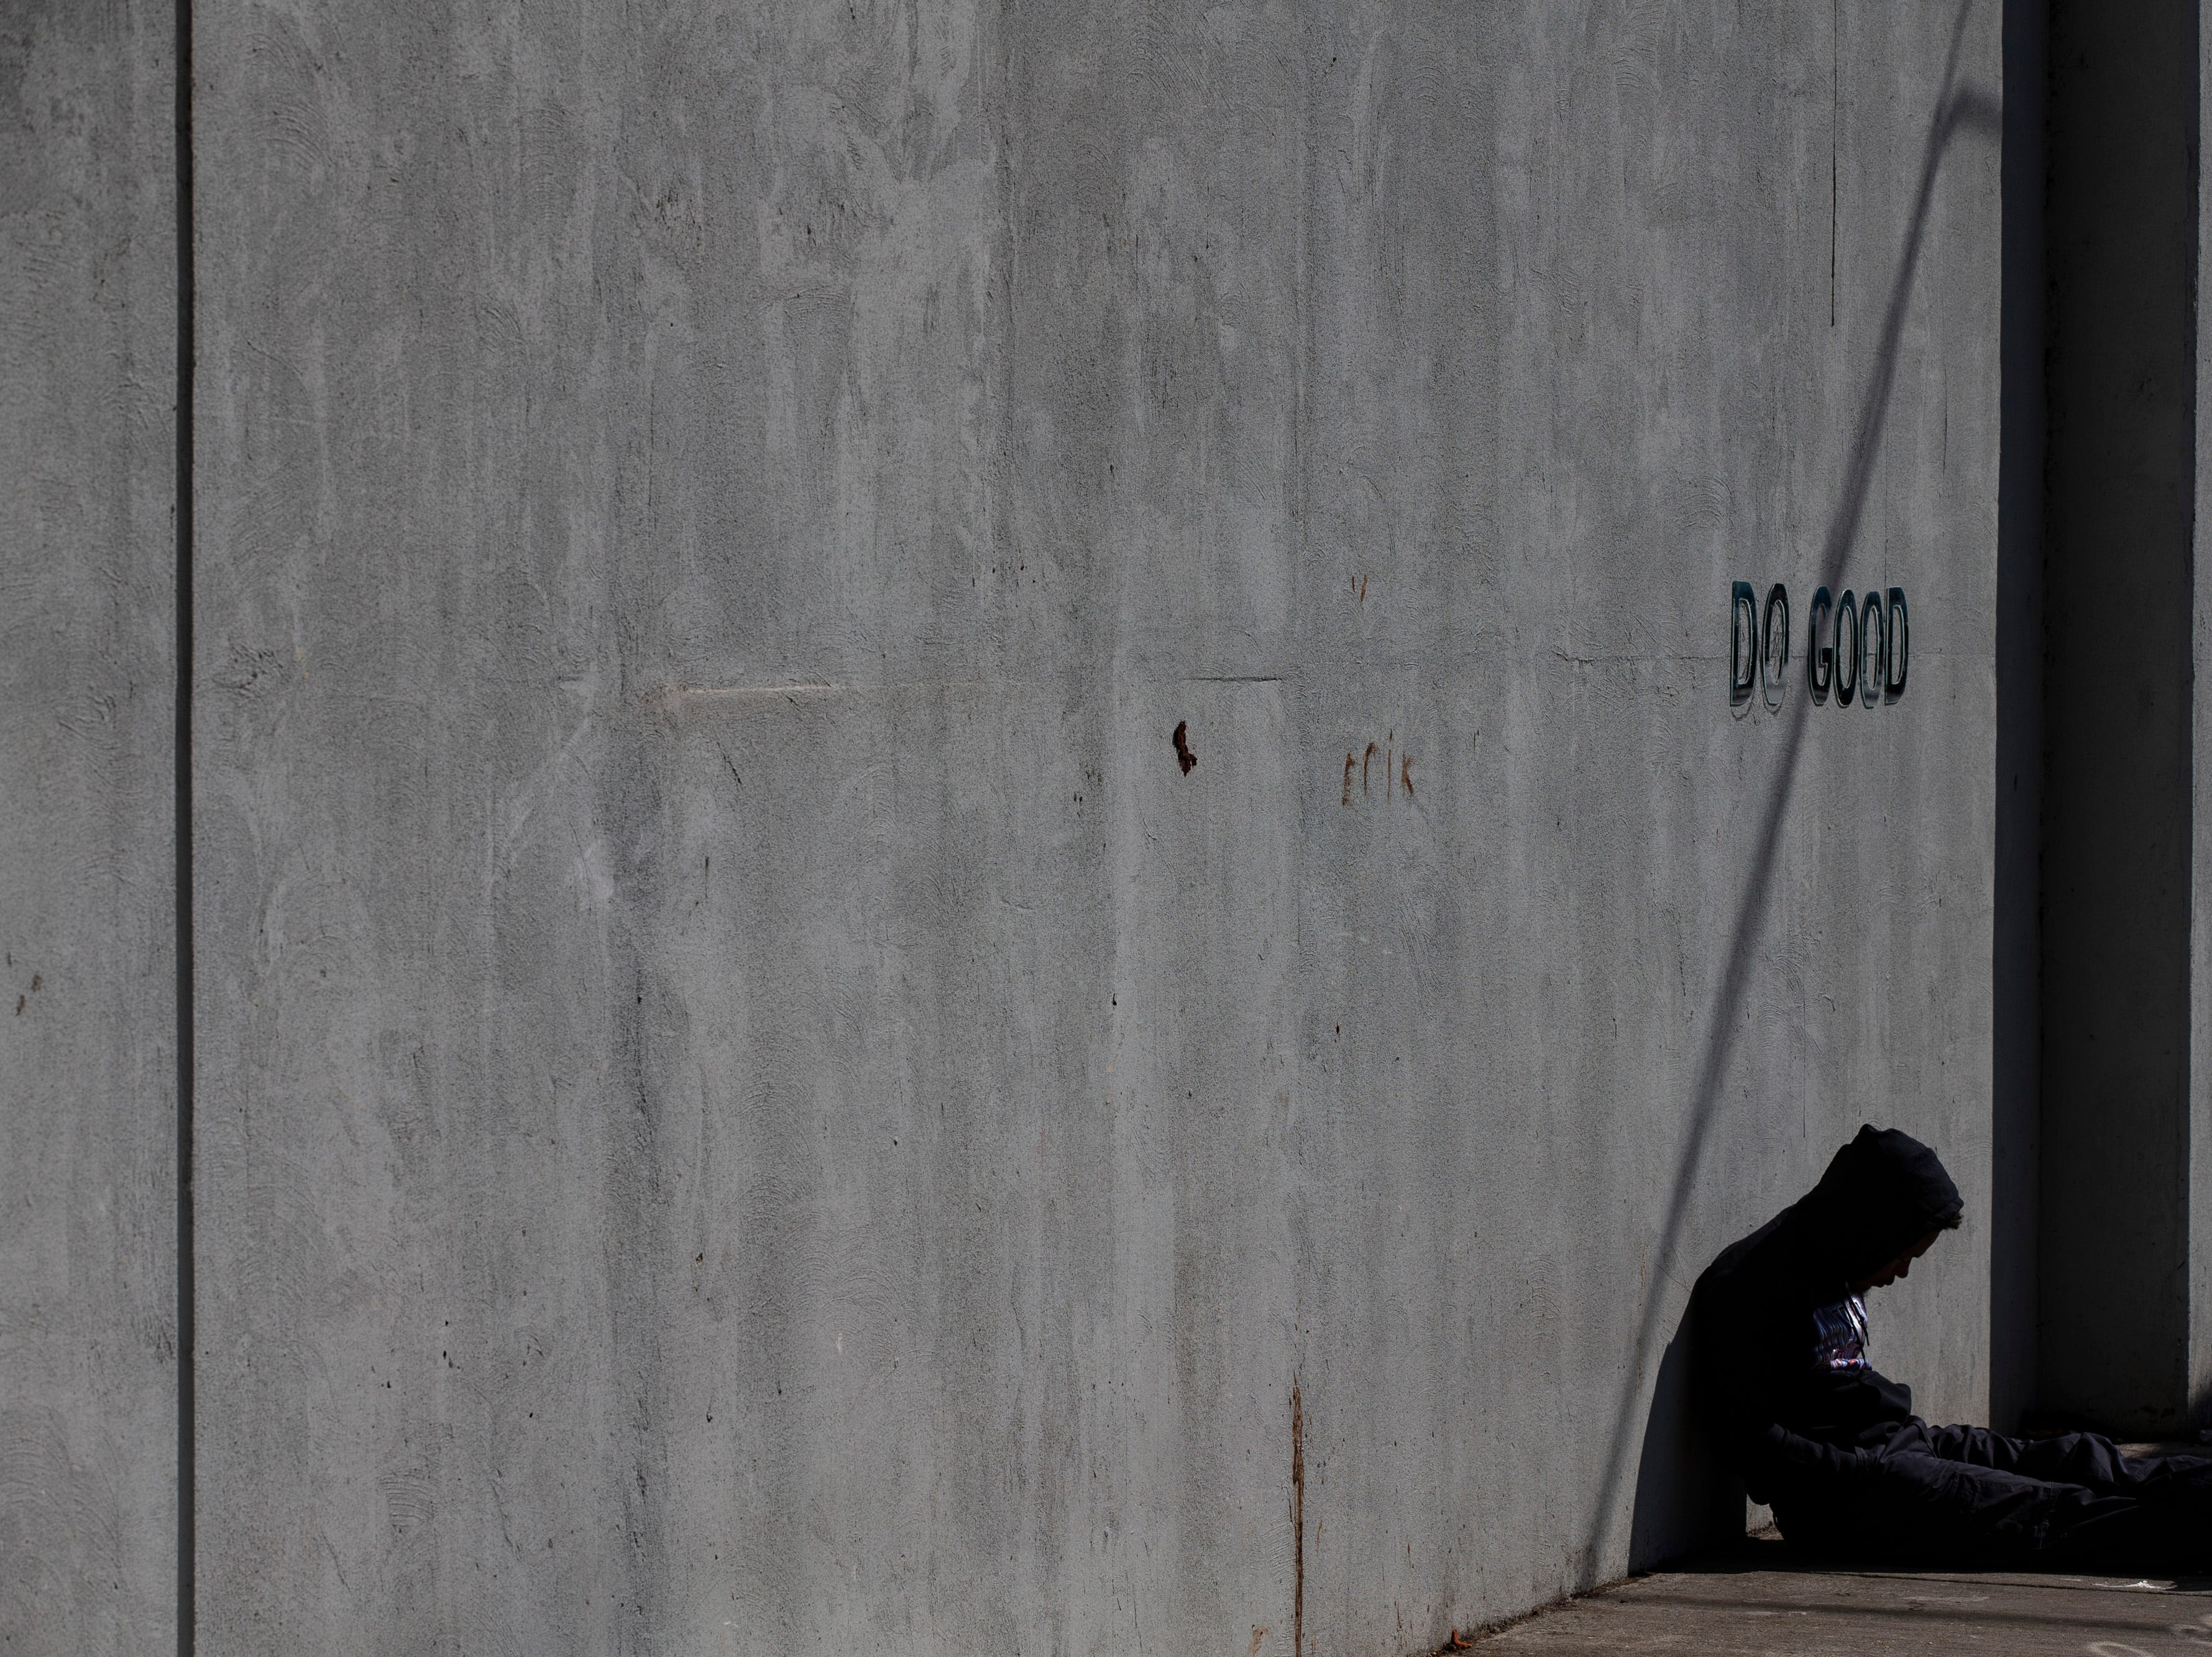 A homeless resident rest against the wall at the homeless camp area under the bypasses along East Jefferson Street and Jackson Street in downtown Louisville. March 18, 2019